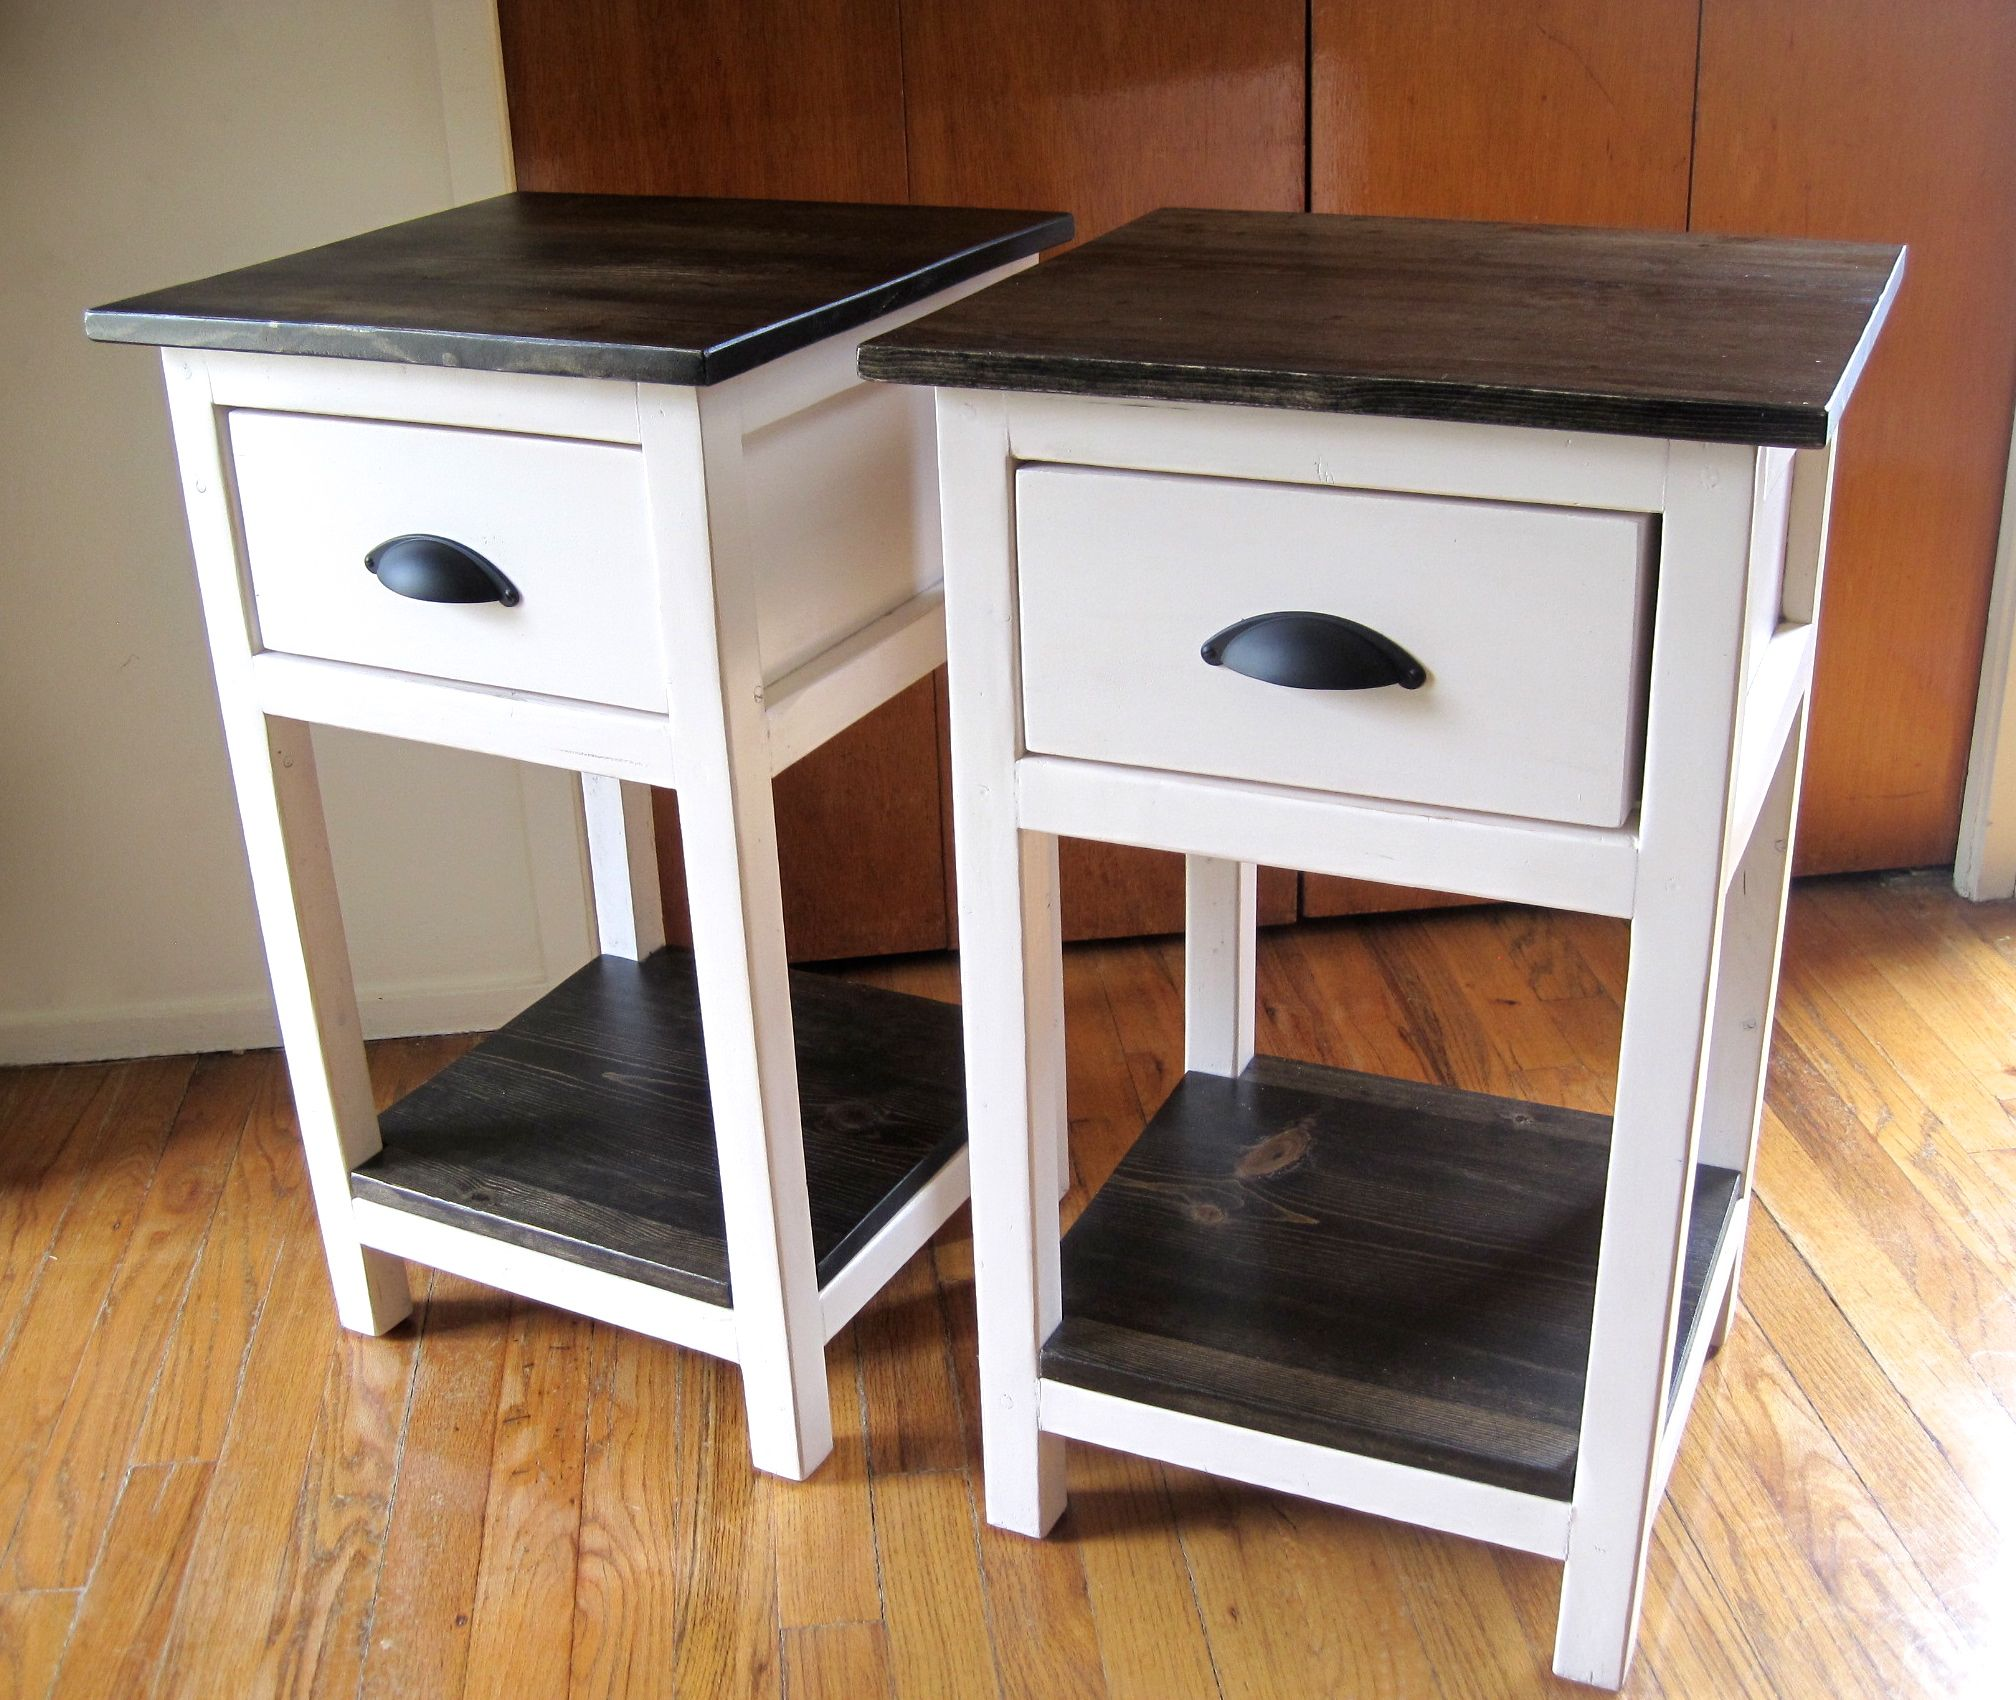 Diy Bedside Table Ana White Build A Mini Farmhouse Bedside Table Plans